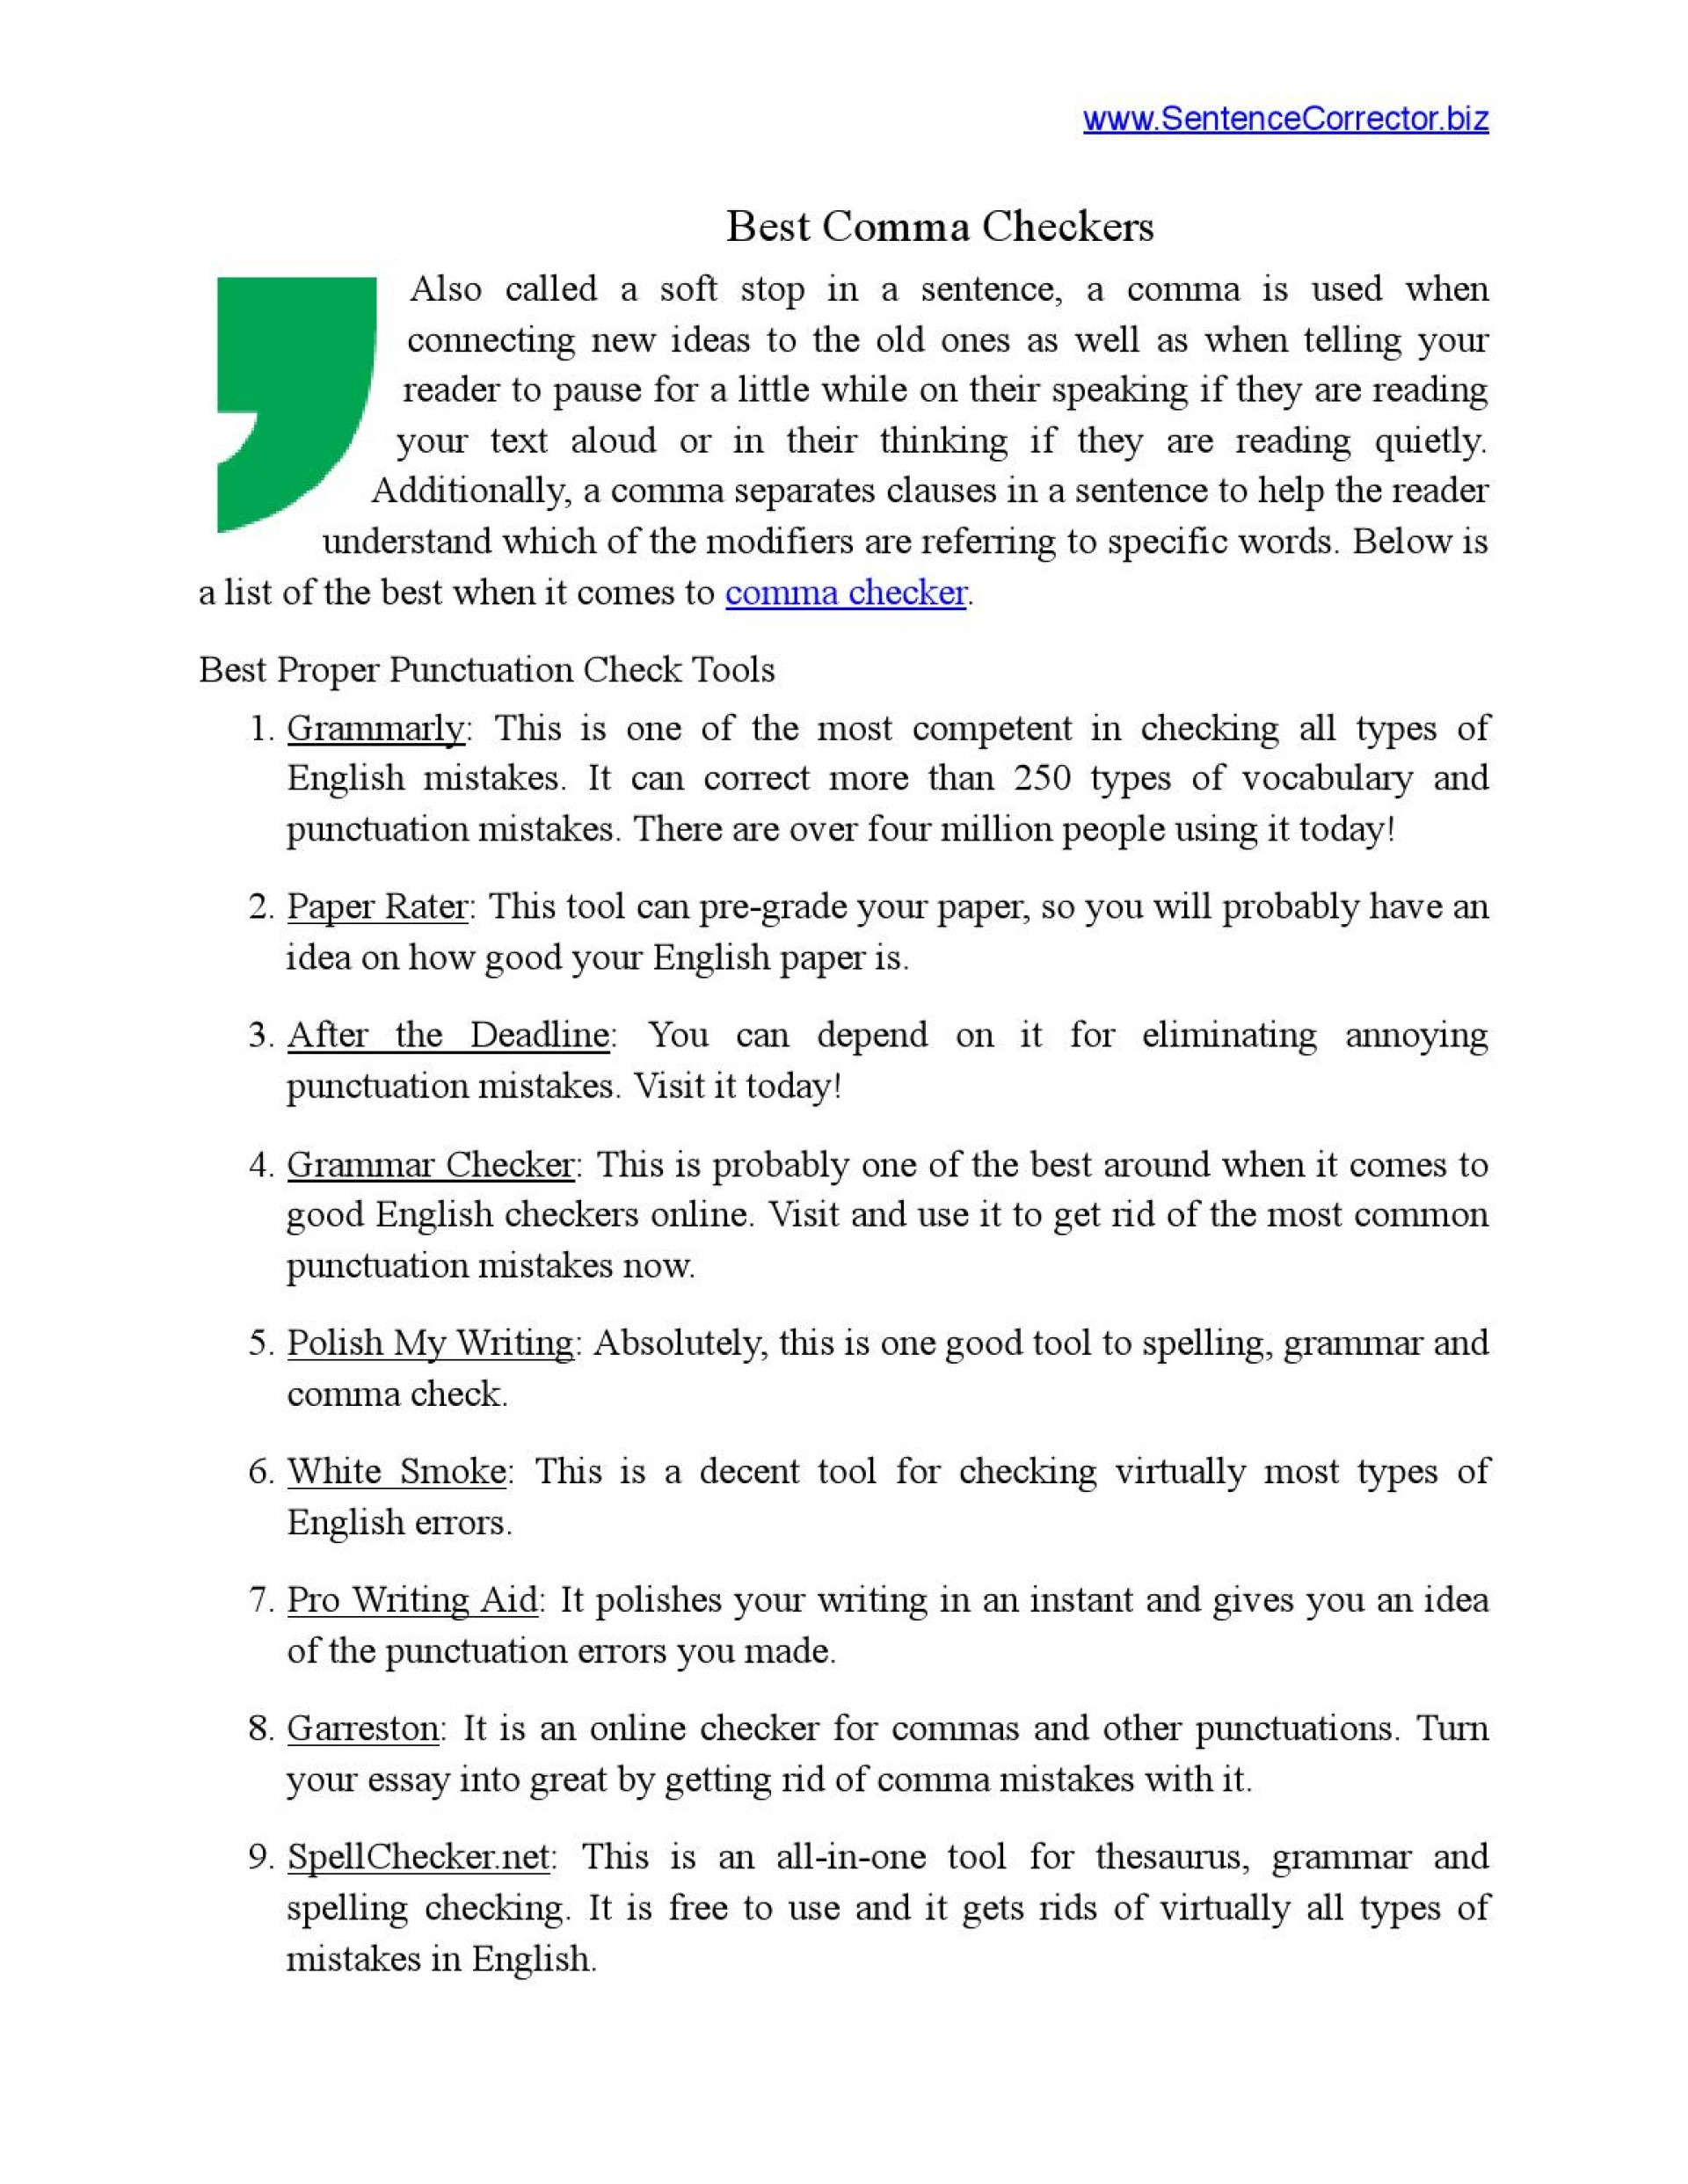 009 Check Essay Example Page 1 Archaicawful My For Punctuation Errors Free On Turnitin Grammar 1920